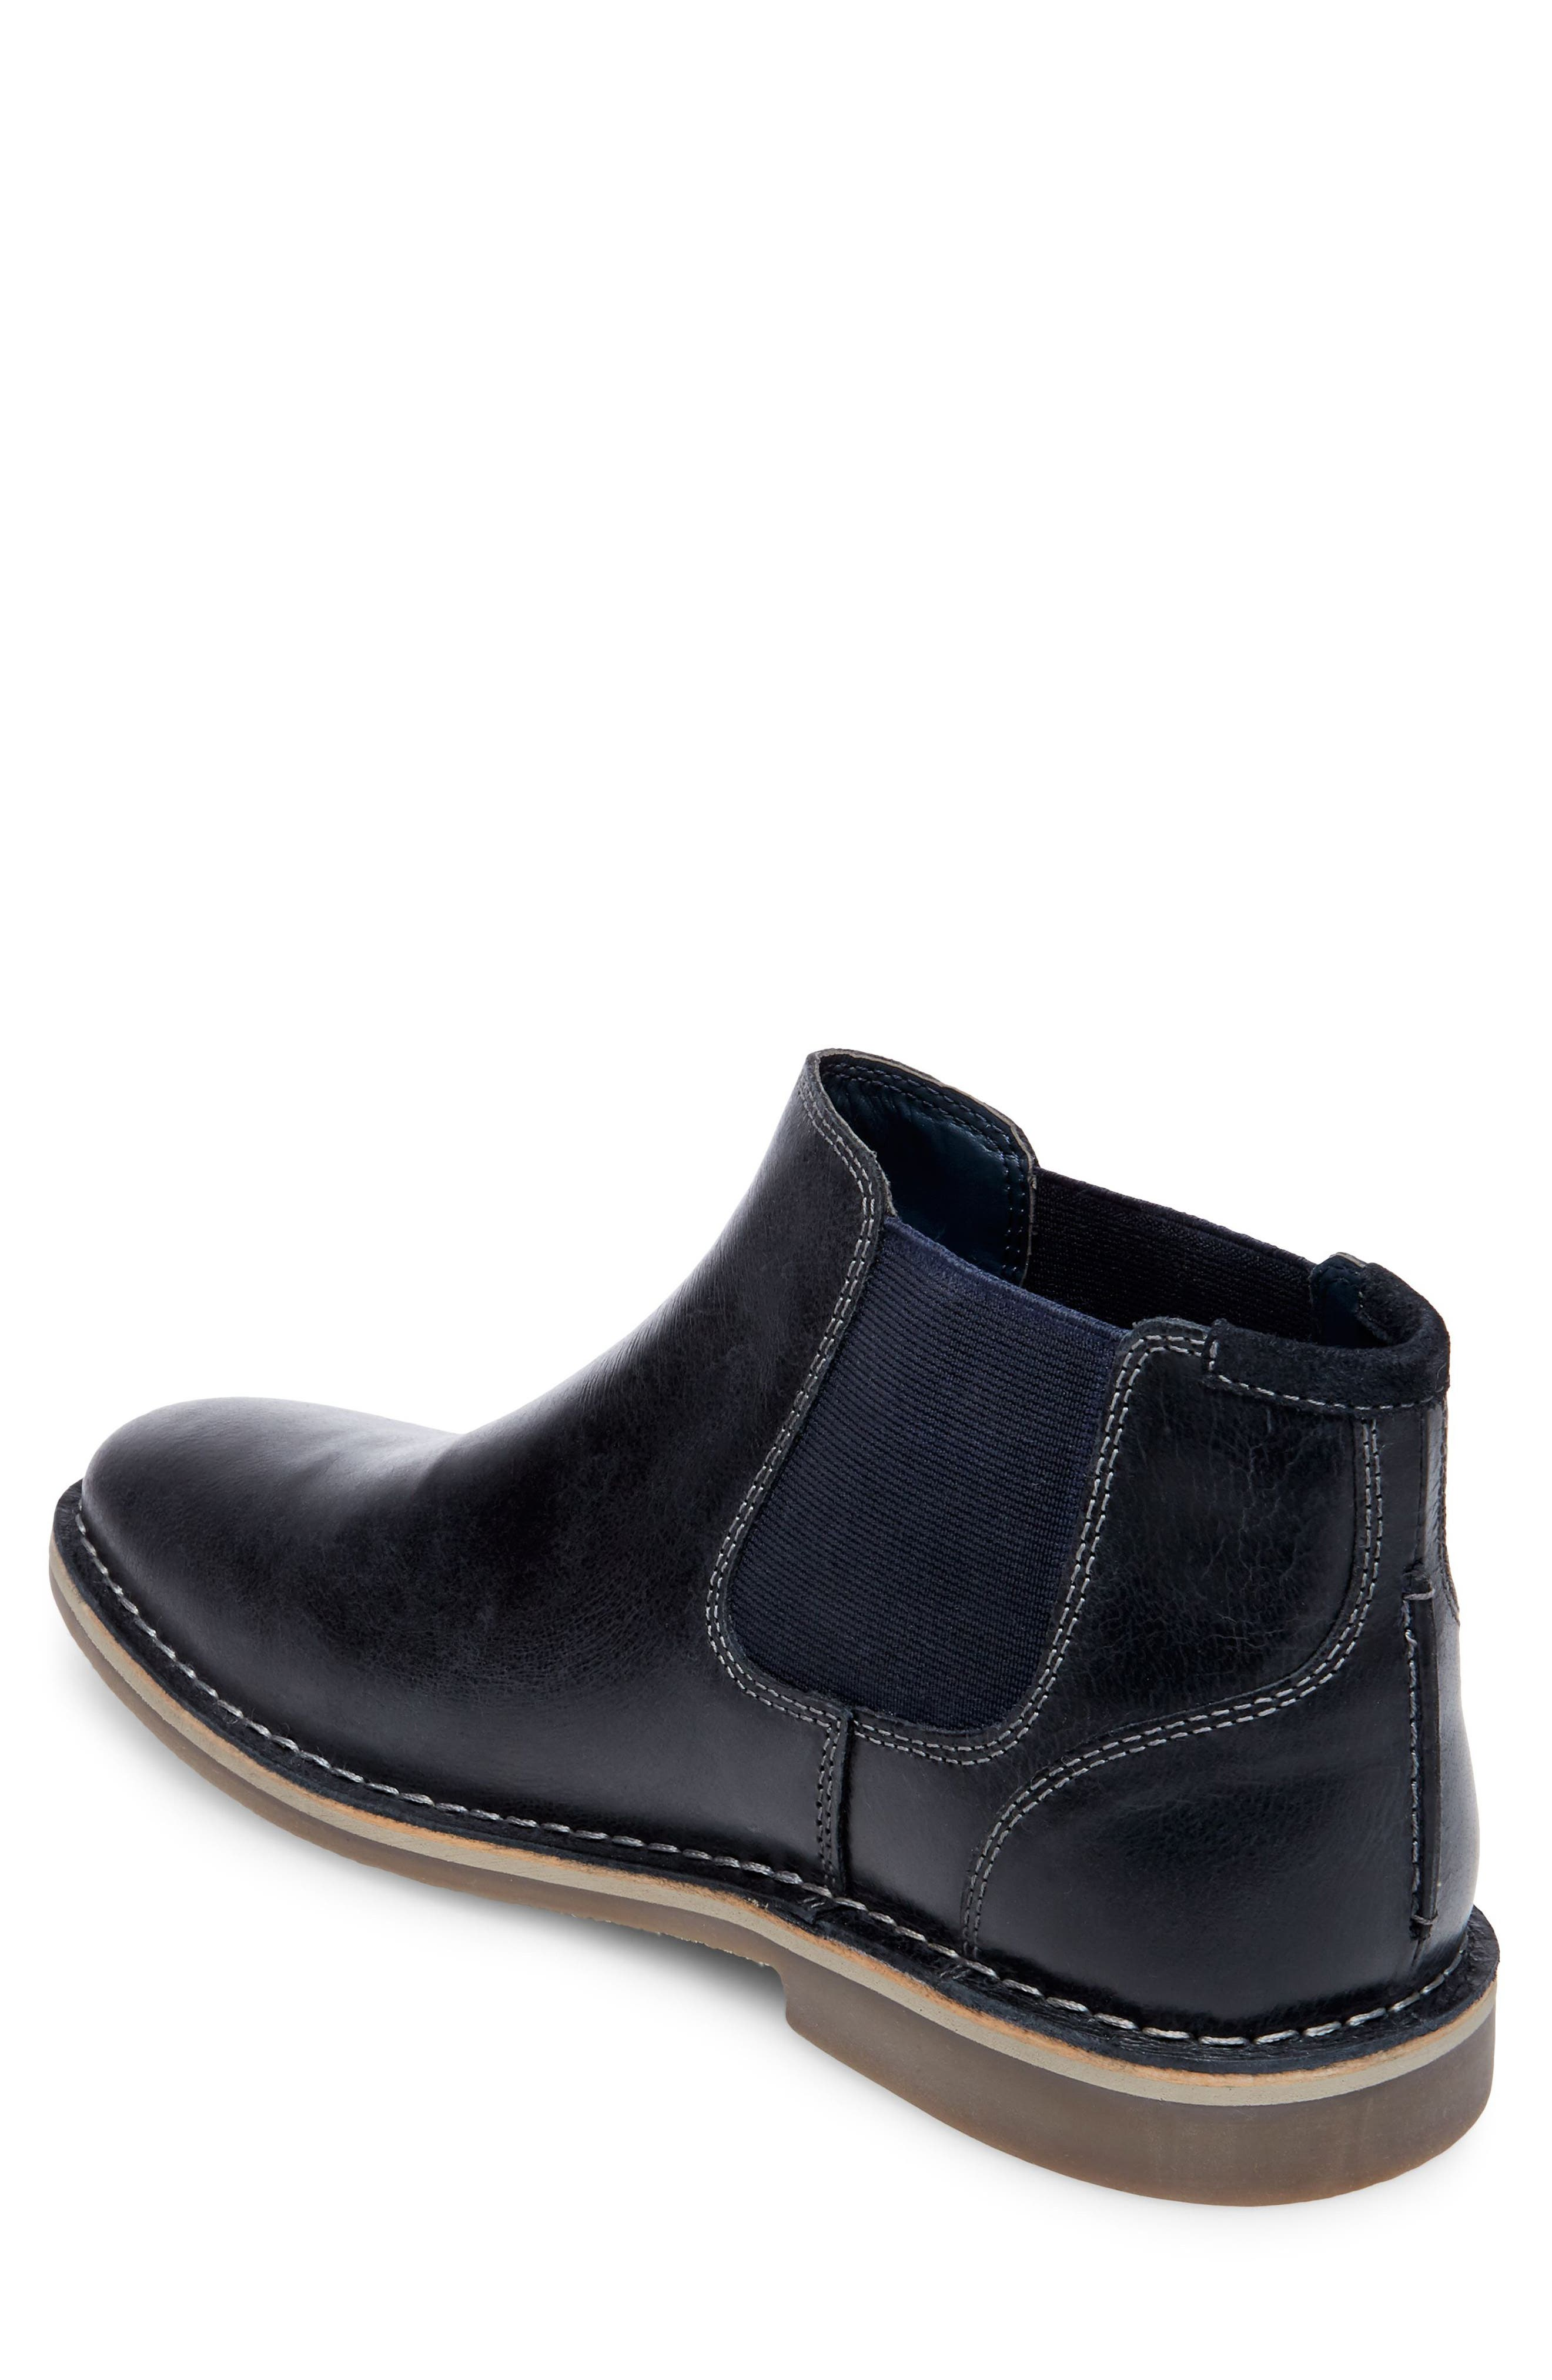 Horus Mid Top Chelsea Boot,                             Alternate thumbnail 2, color,                             Navy Leather